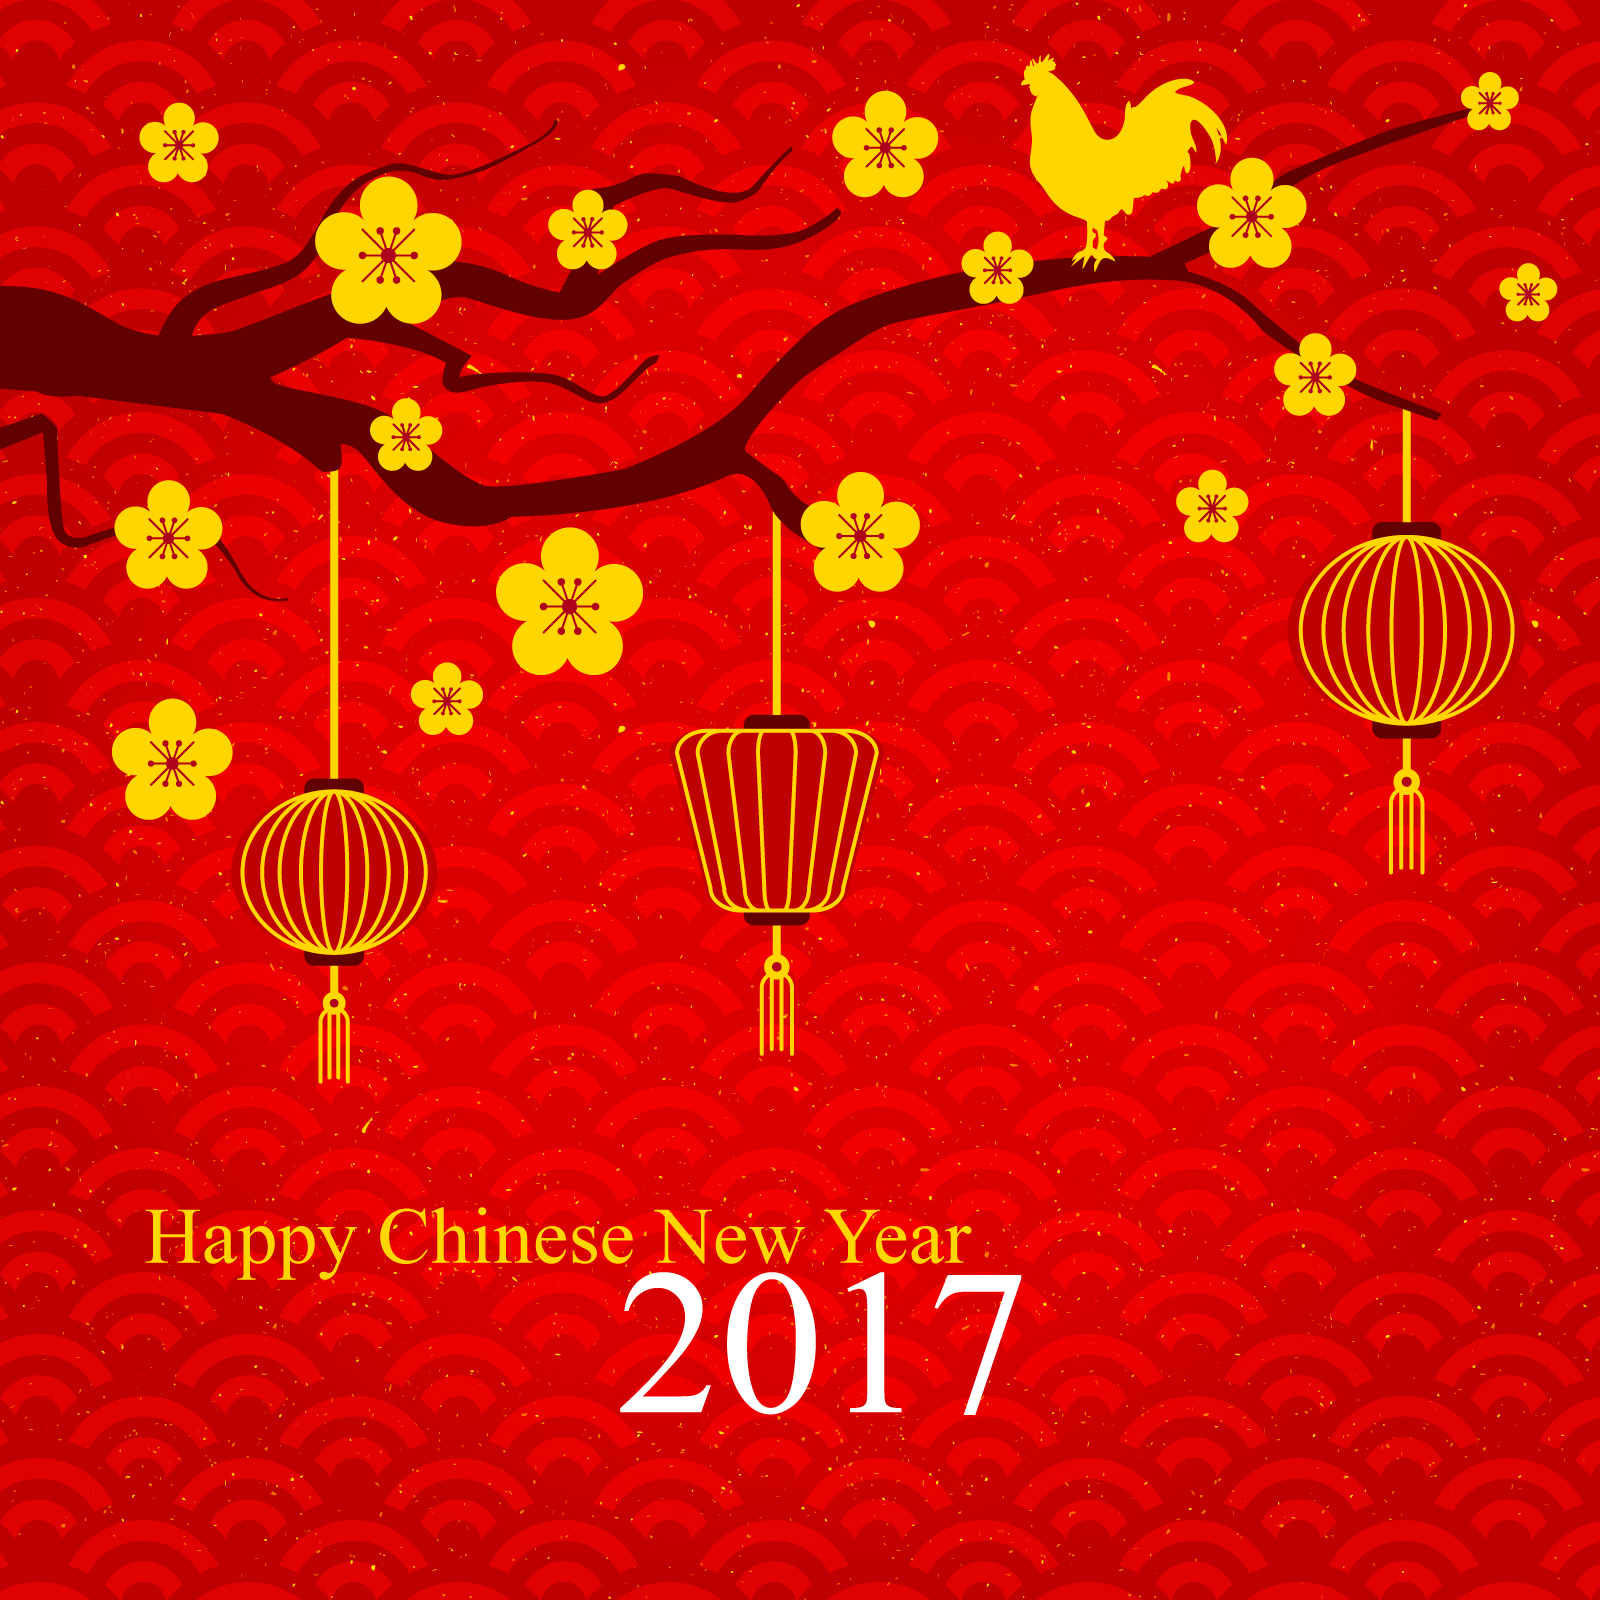 blessing in 2017 happy new year  chinese red design china illustrations vectors ai esp  u2013 free